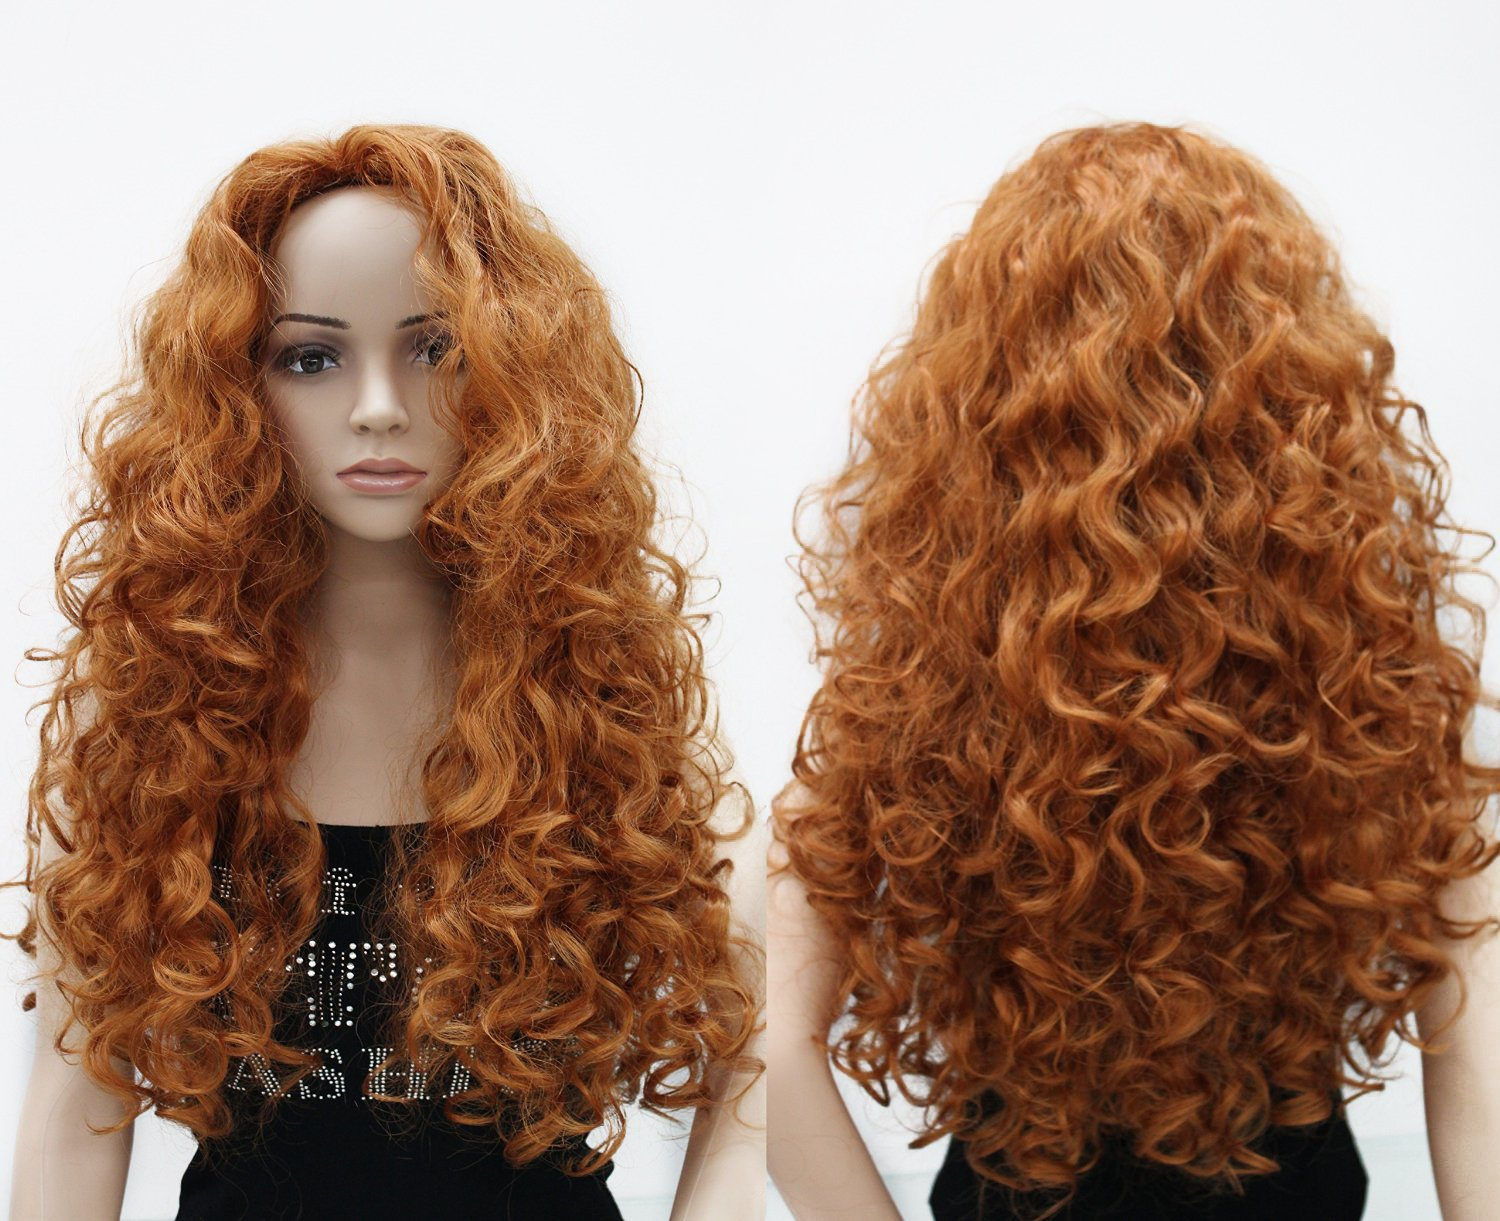 Amazon.com: Kamo 32 Inches Long Wave Curly Wig Hair Wigs ...